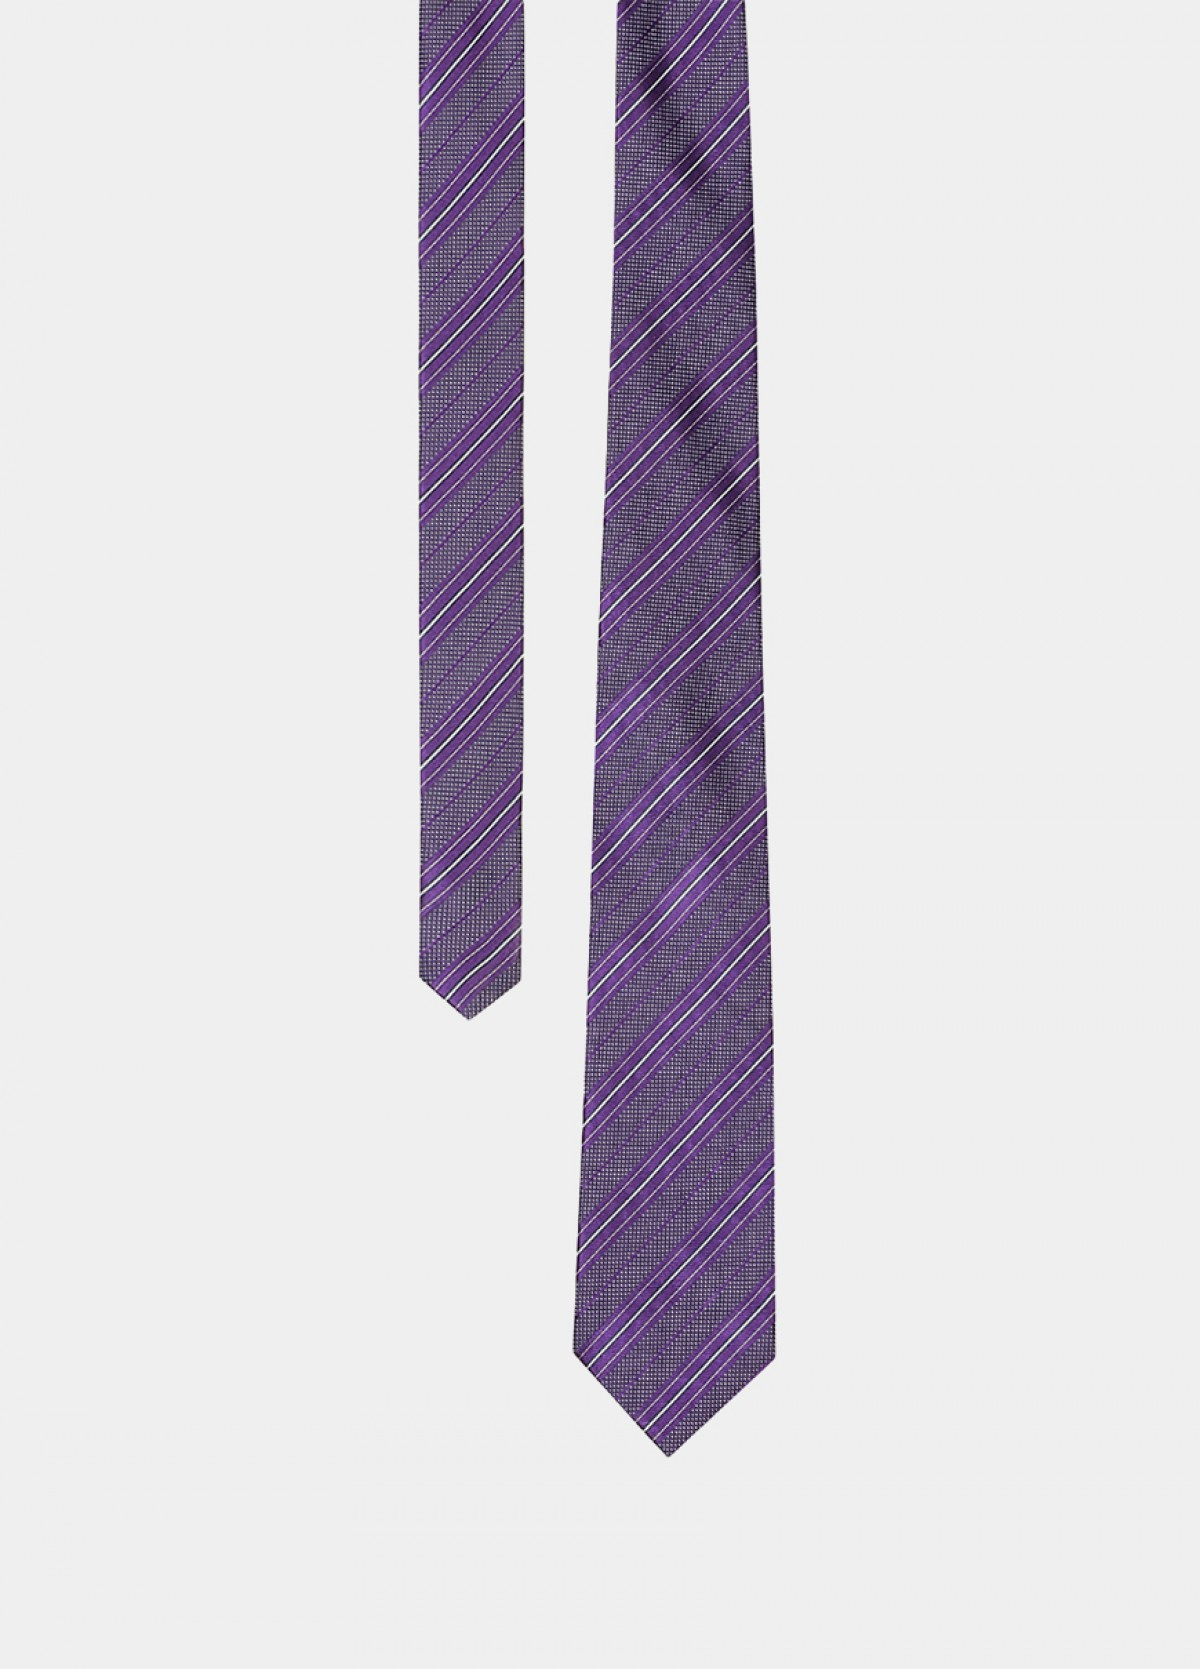 The Purple Stain Resistant Tie